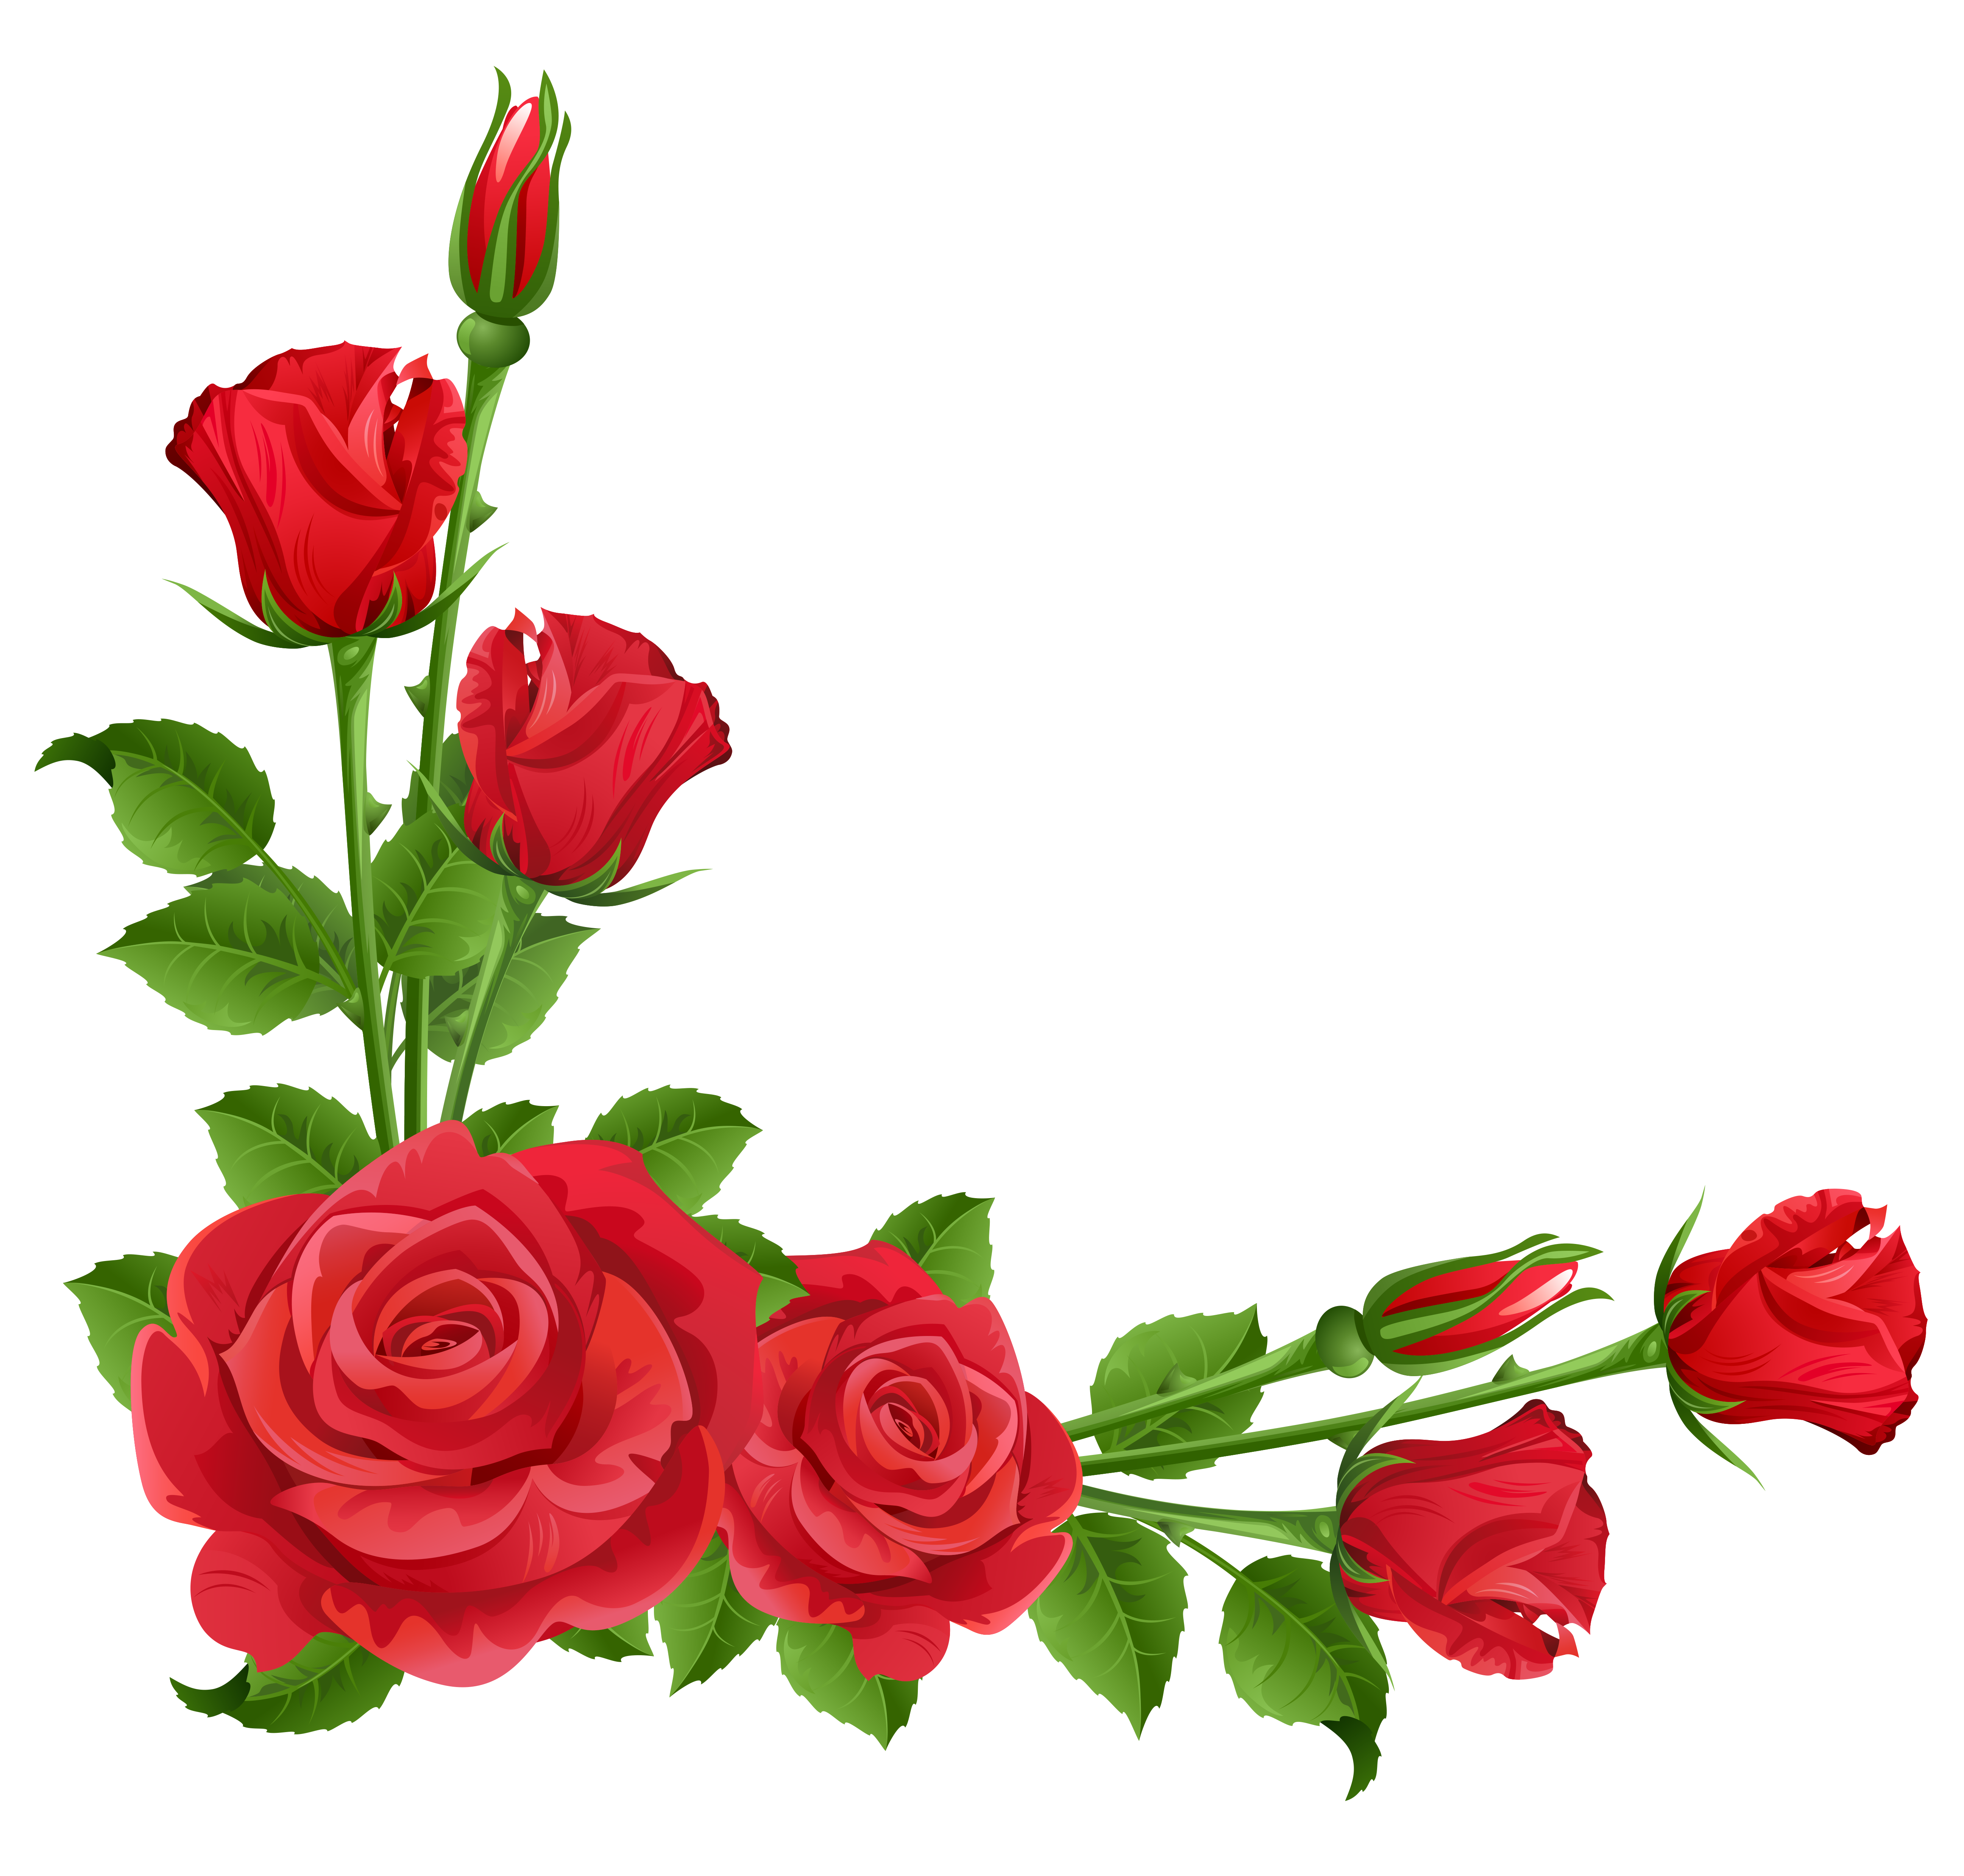 Rosas rojas vector png. Red roses transparent clipart